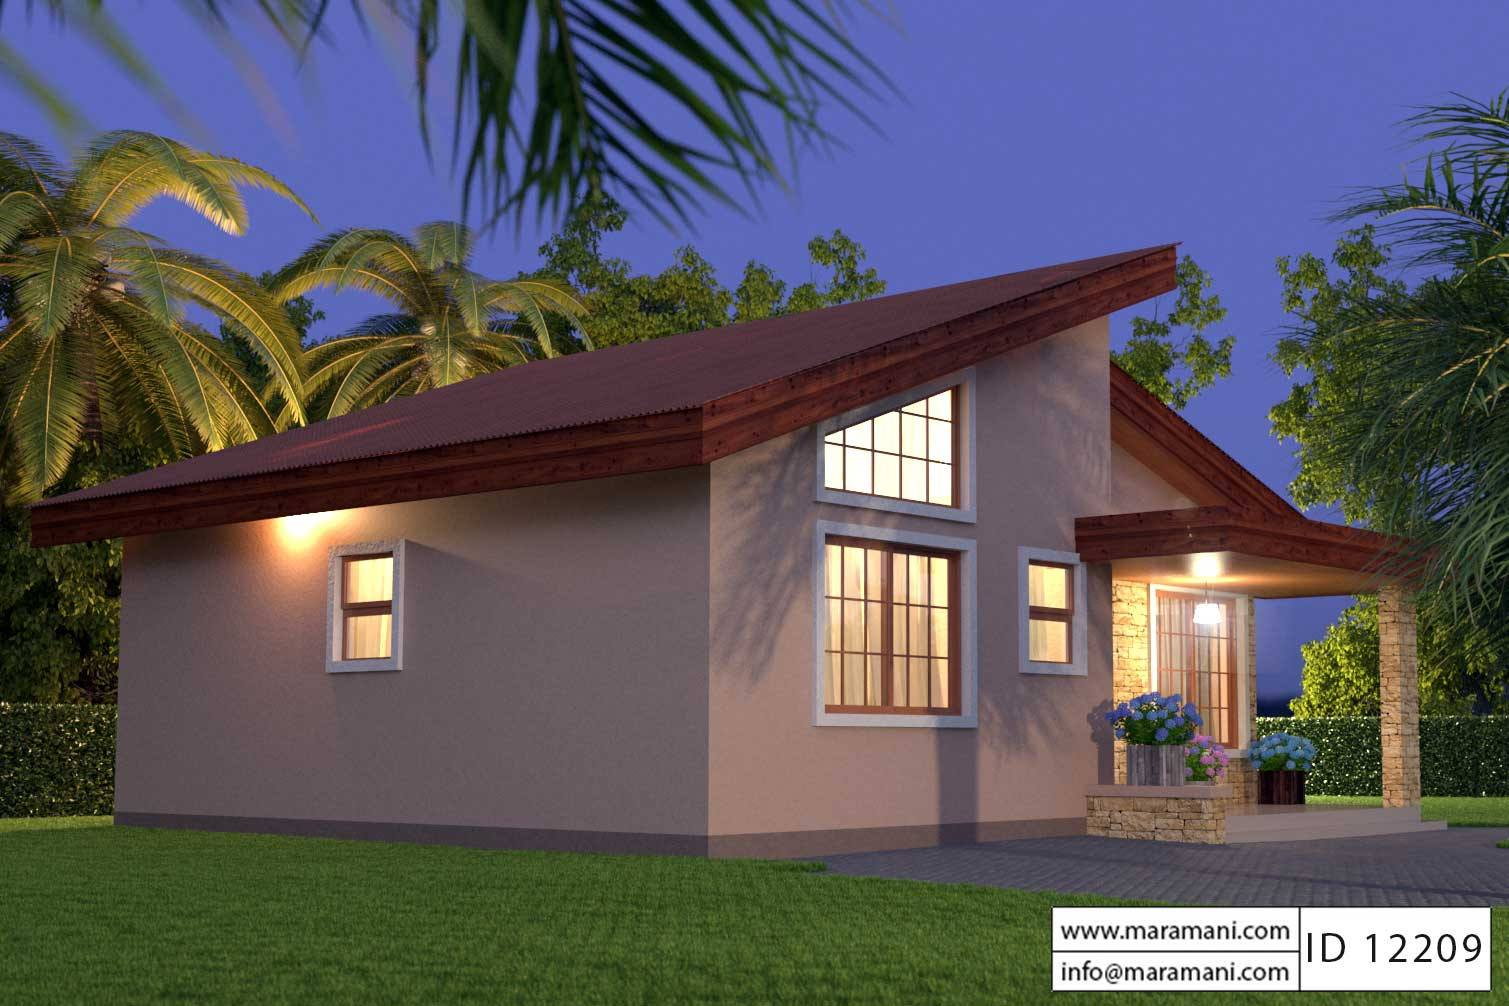 Unique Small House Plan - ID12209 - Floor Plans by Maramani